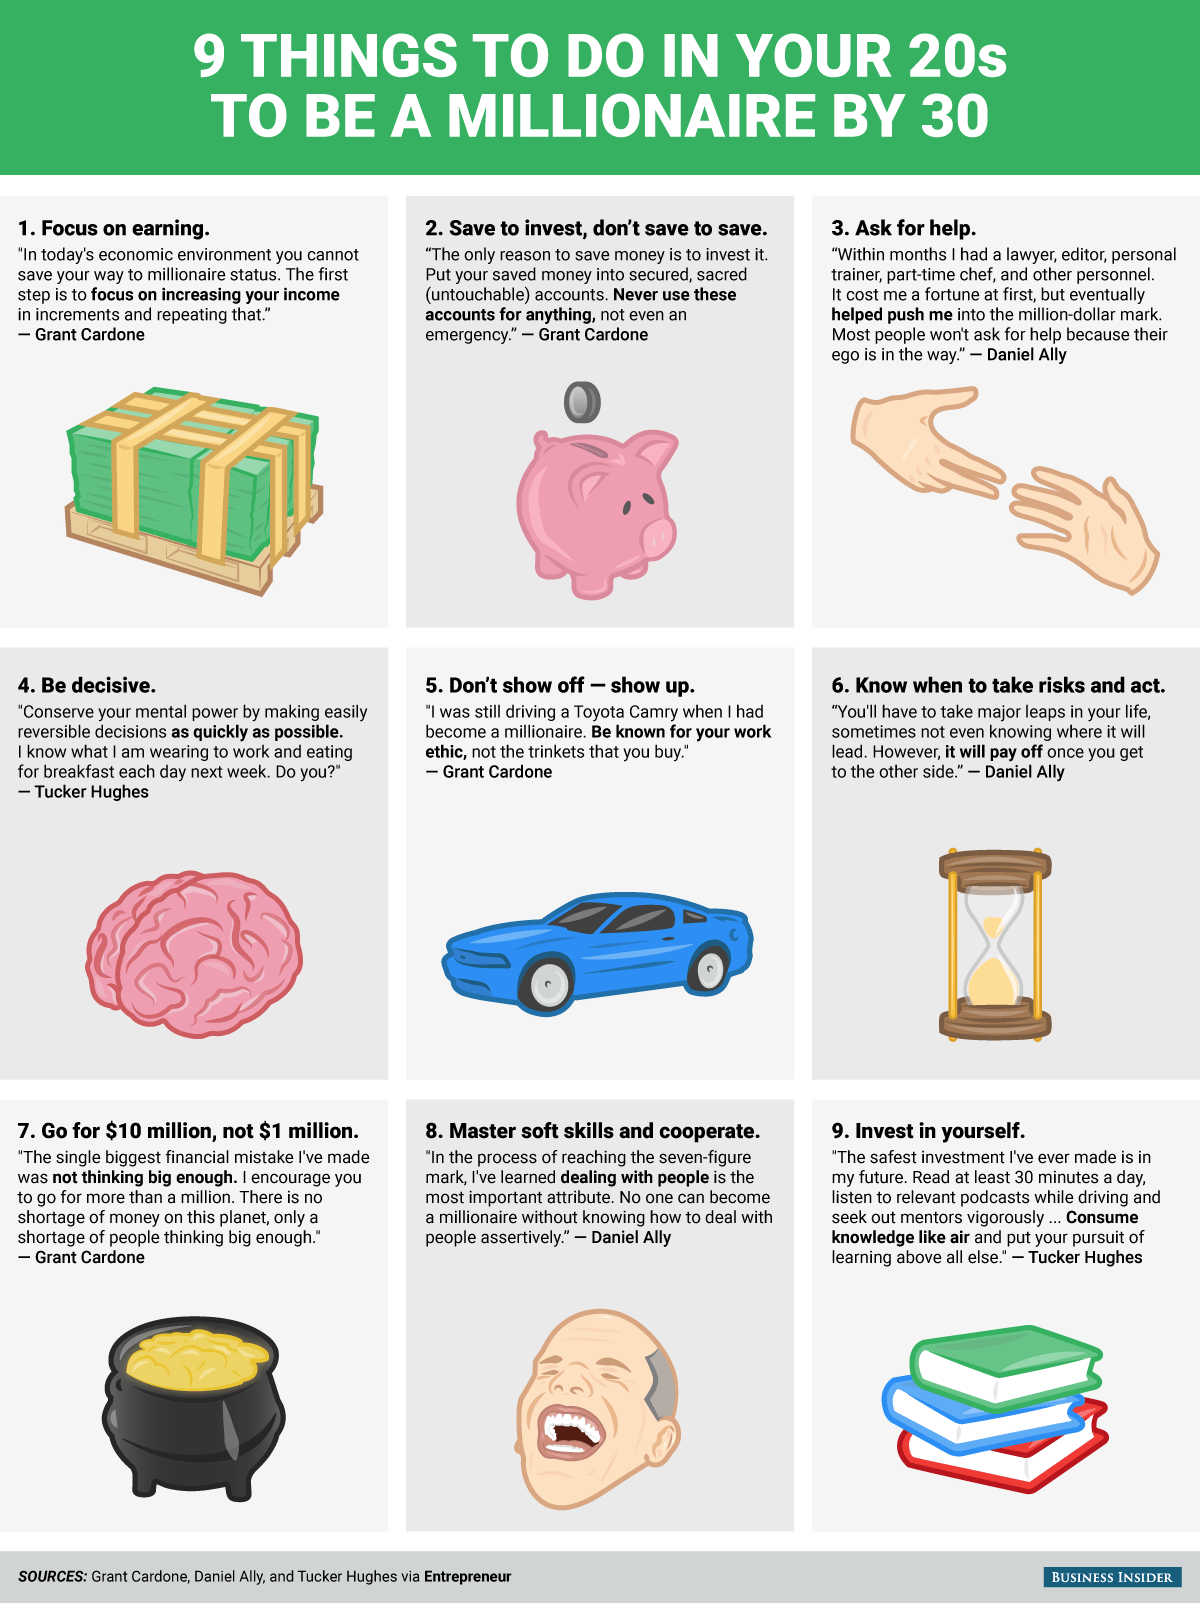 Things You Can Do In Your 20s To Be A Millionaire By 30